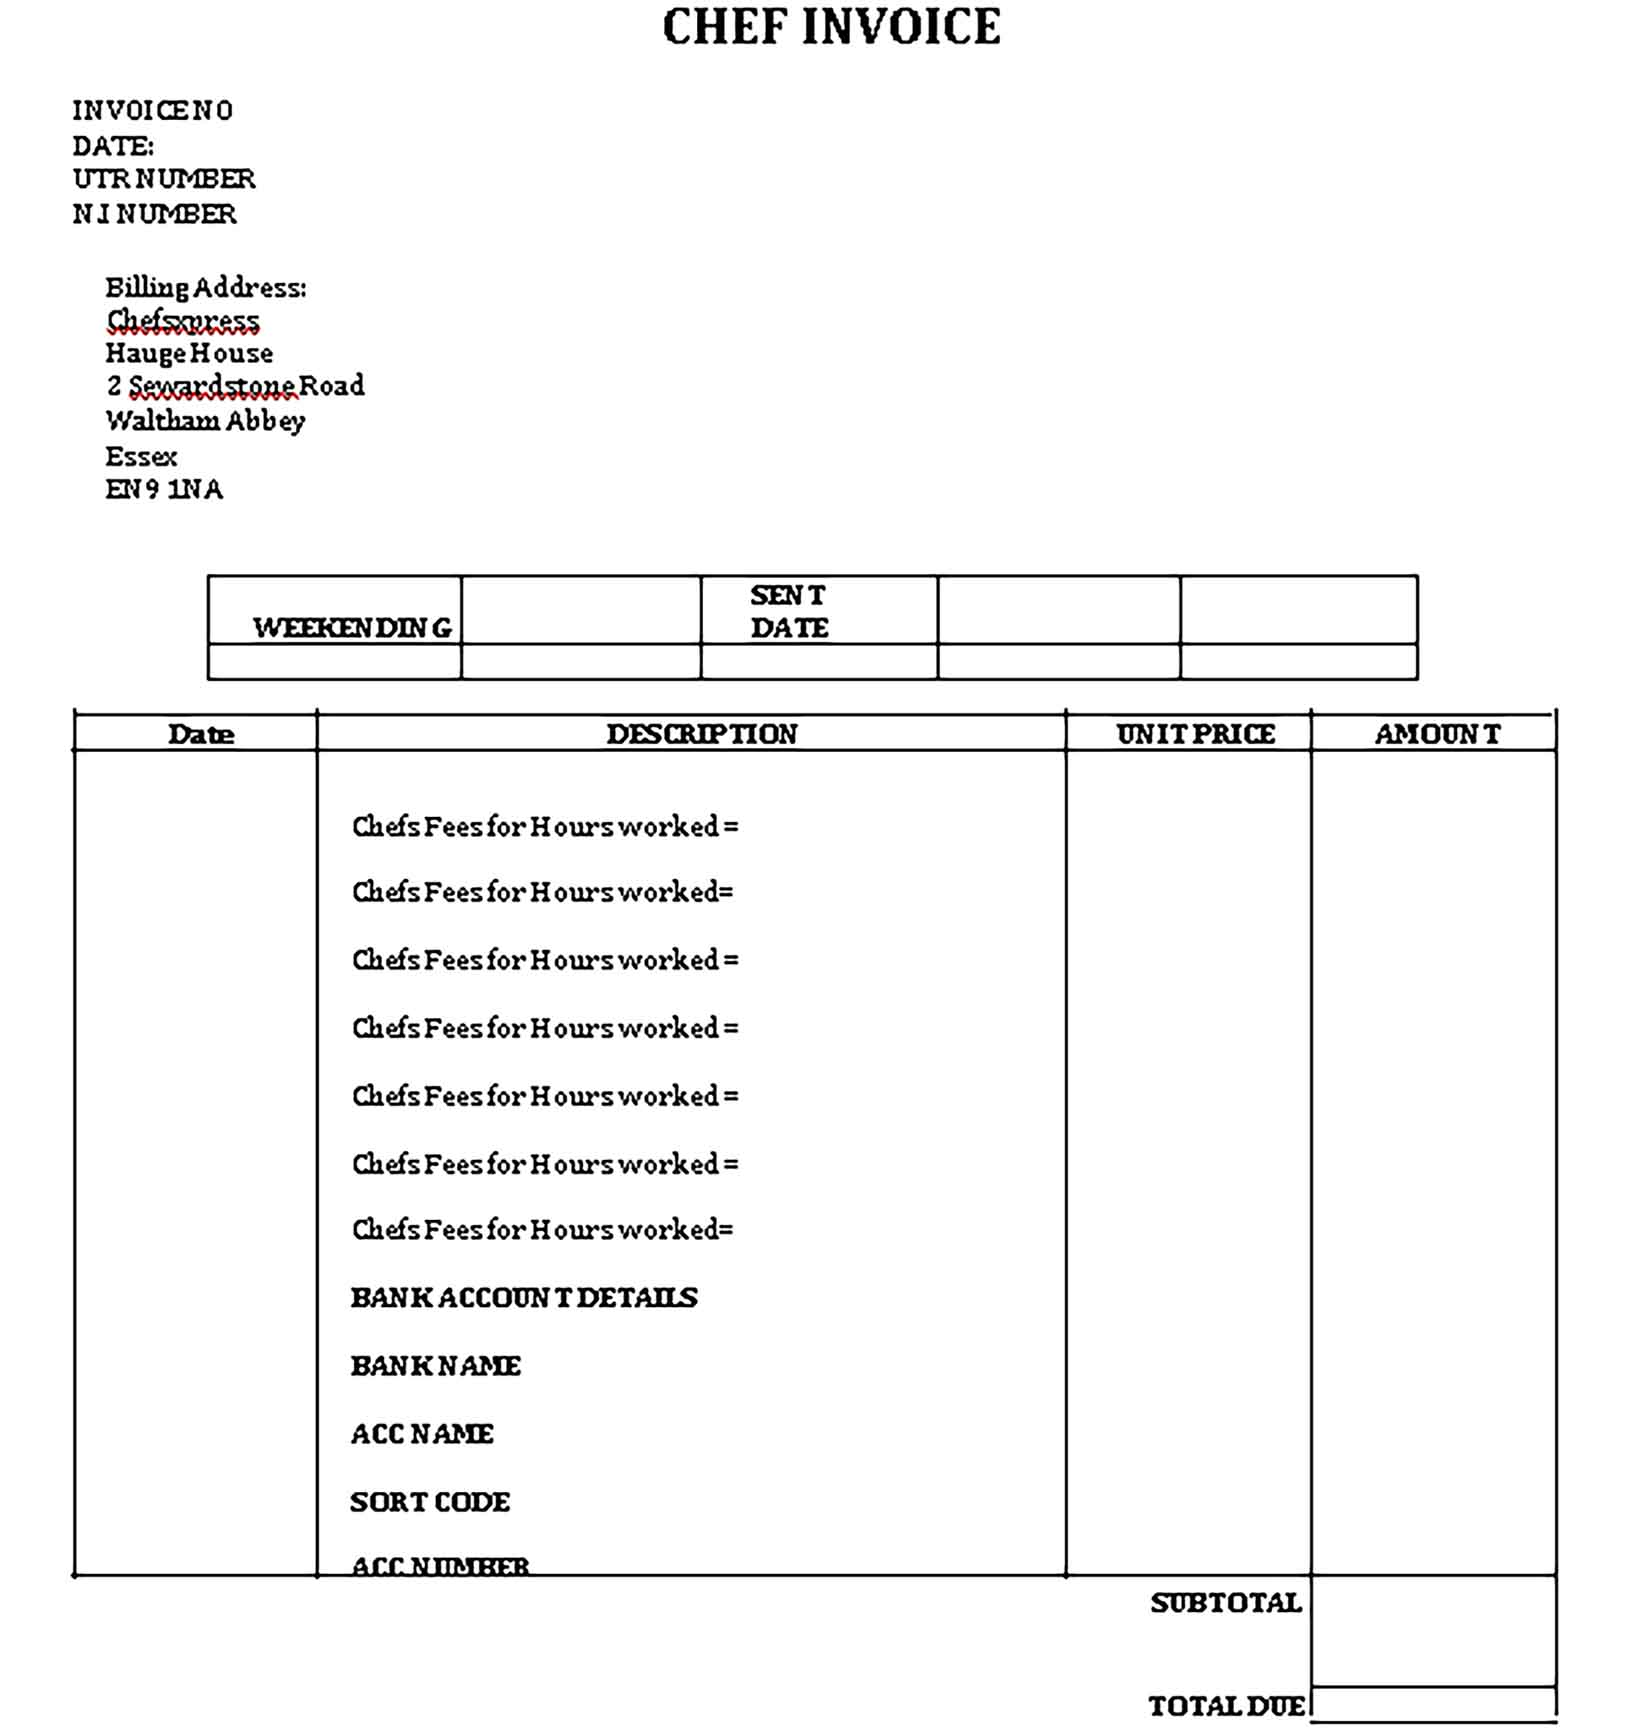 Sample Templates Self Employed Chef Invoice